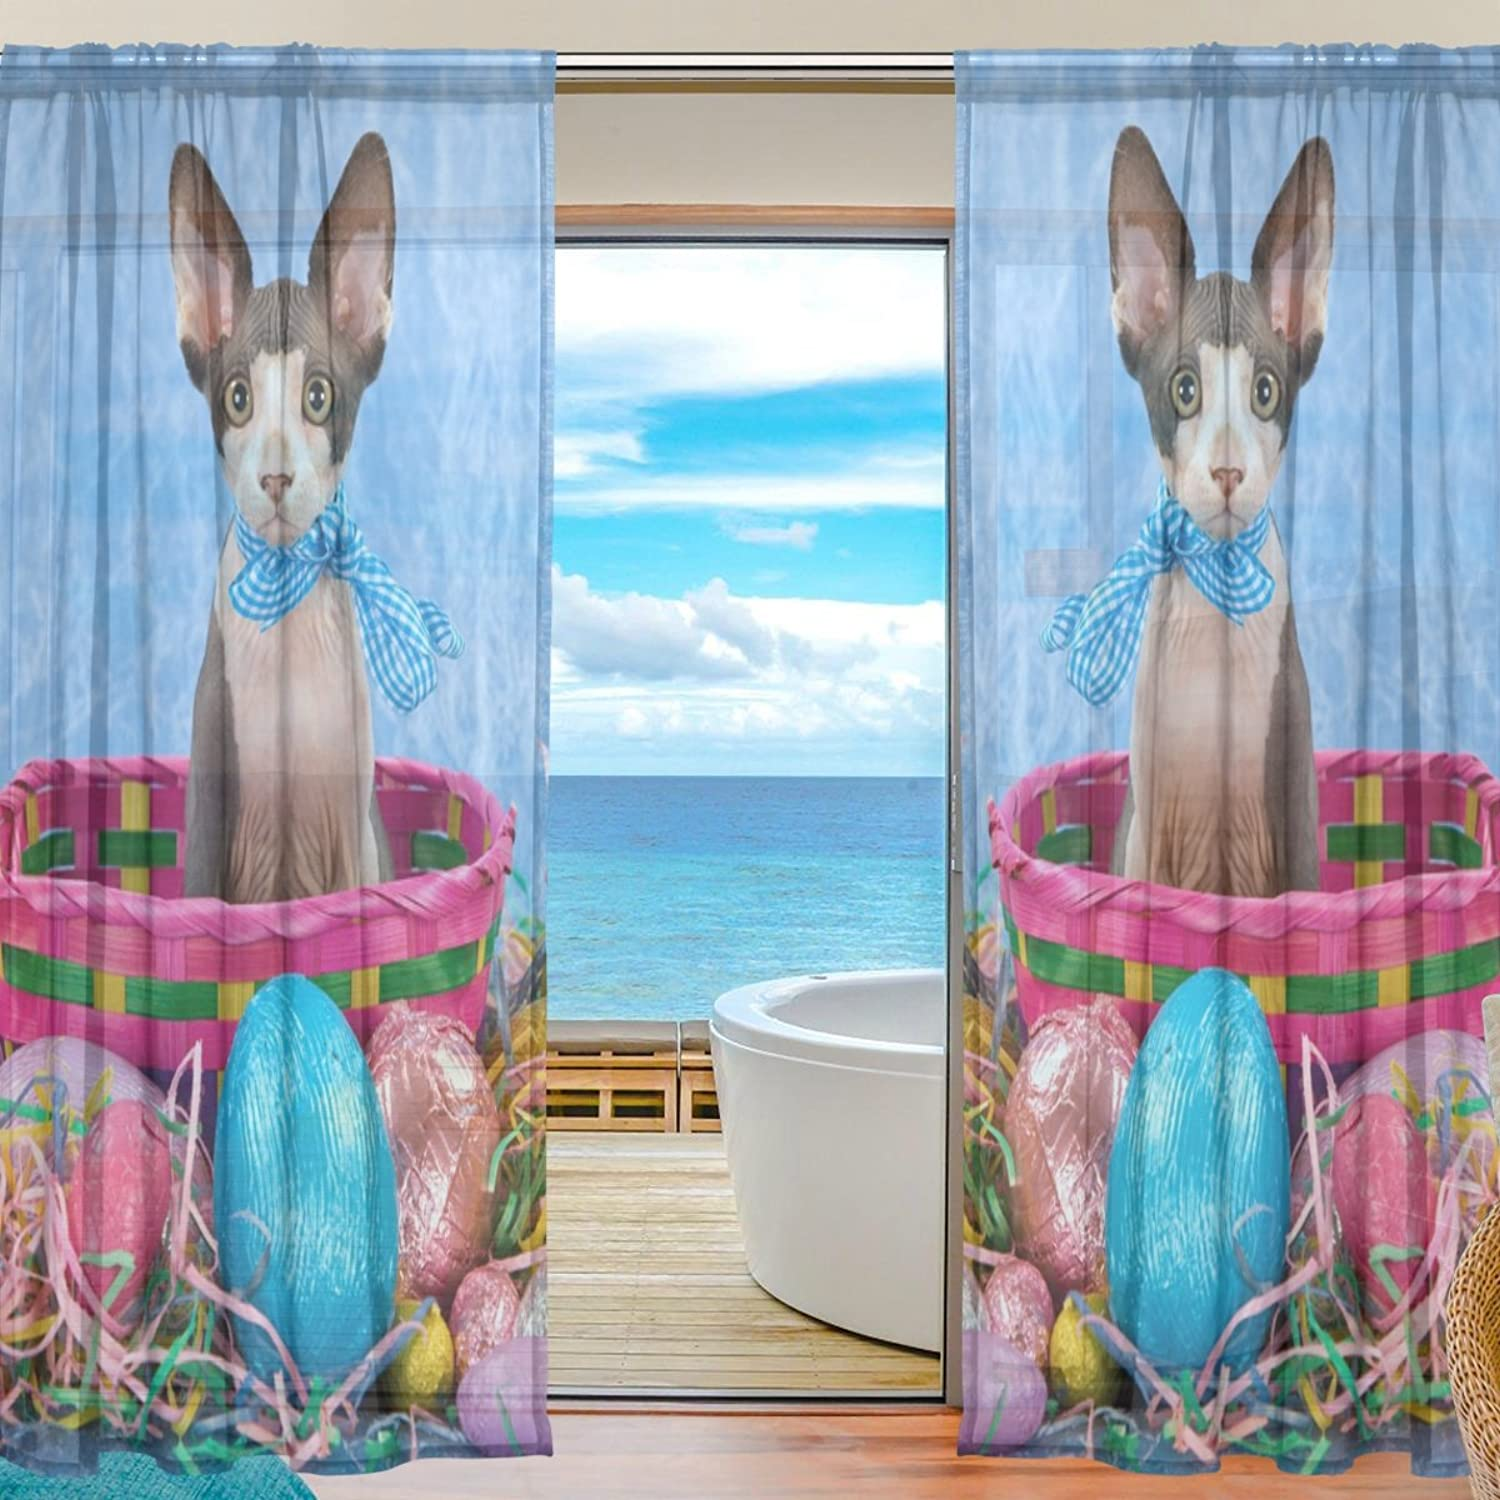 Vantaso Sheer Curtains 78 inch Long Sphinx Sphynx Kitten with Easter Eggs for Kids Girls Bedroom Living Room Window Decorative 2 Panels